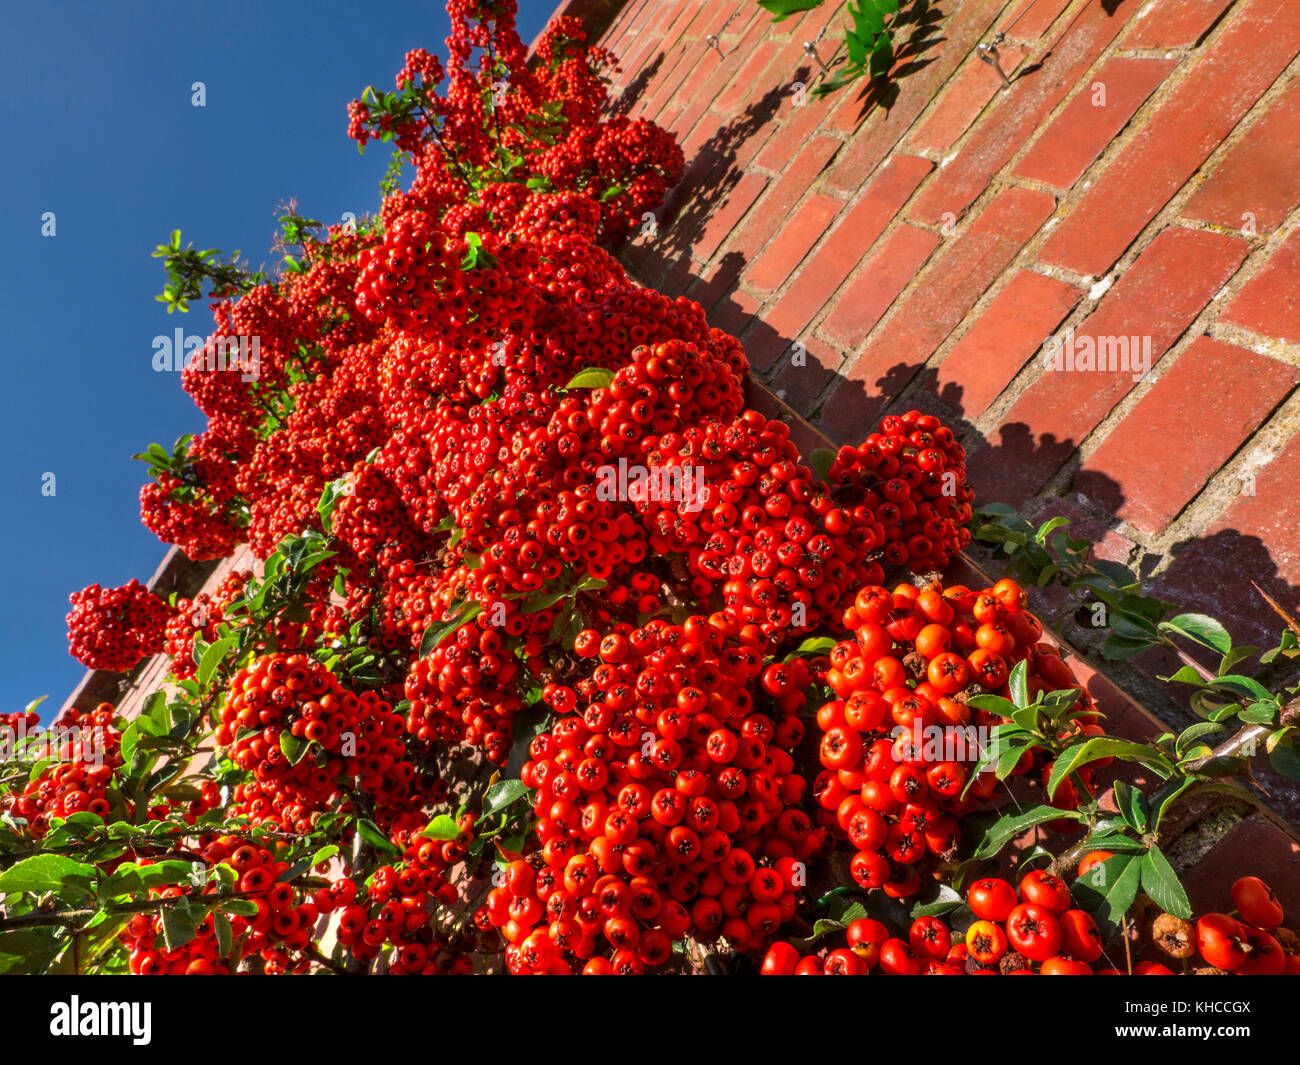 PYRACANTHA Saturated red berry 'pomes' of the Pyracantha evergreen shrub in the Rosaceae Firethorn family - Stock Image